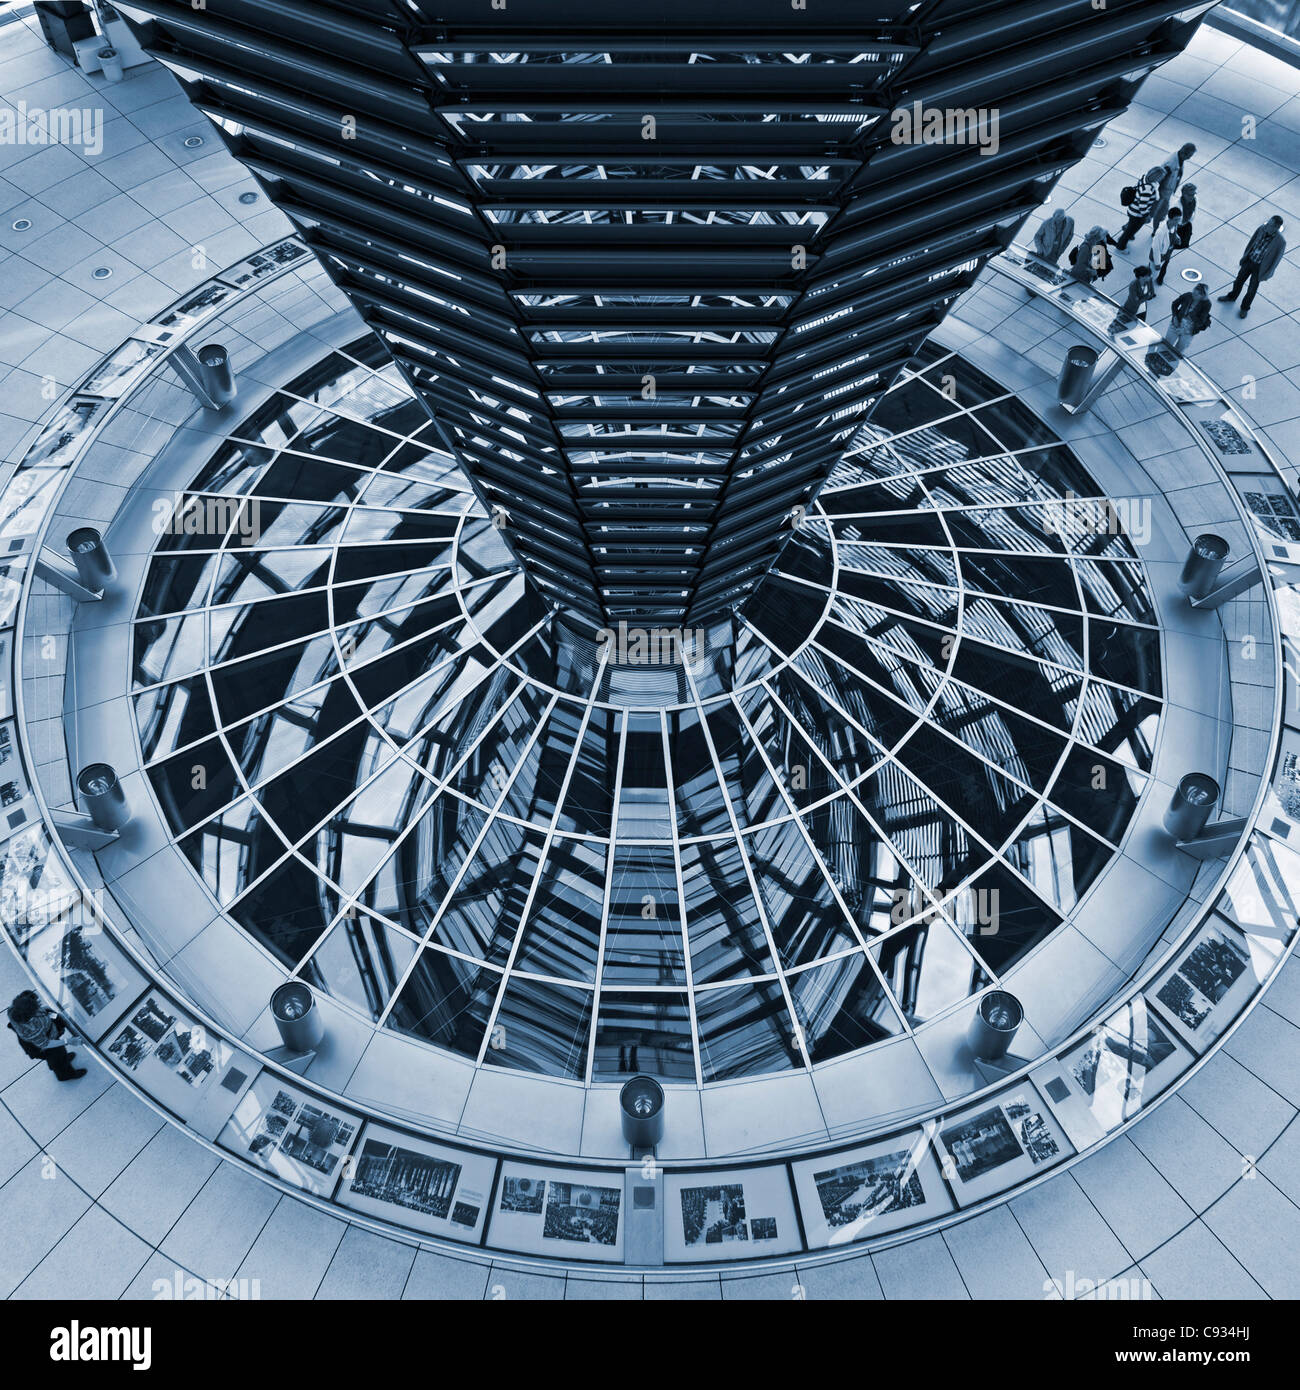 The light funnel of the Reichstag Dome in the Cupola of the Reichstag, Tiergarten, Berlin,Germany. - Stock Image